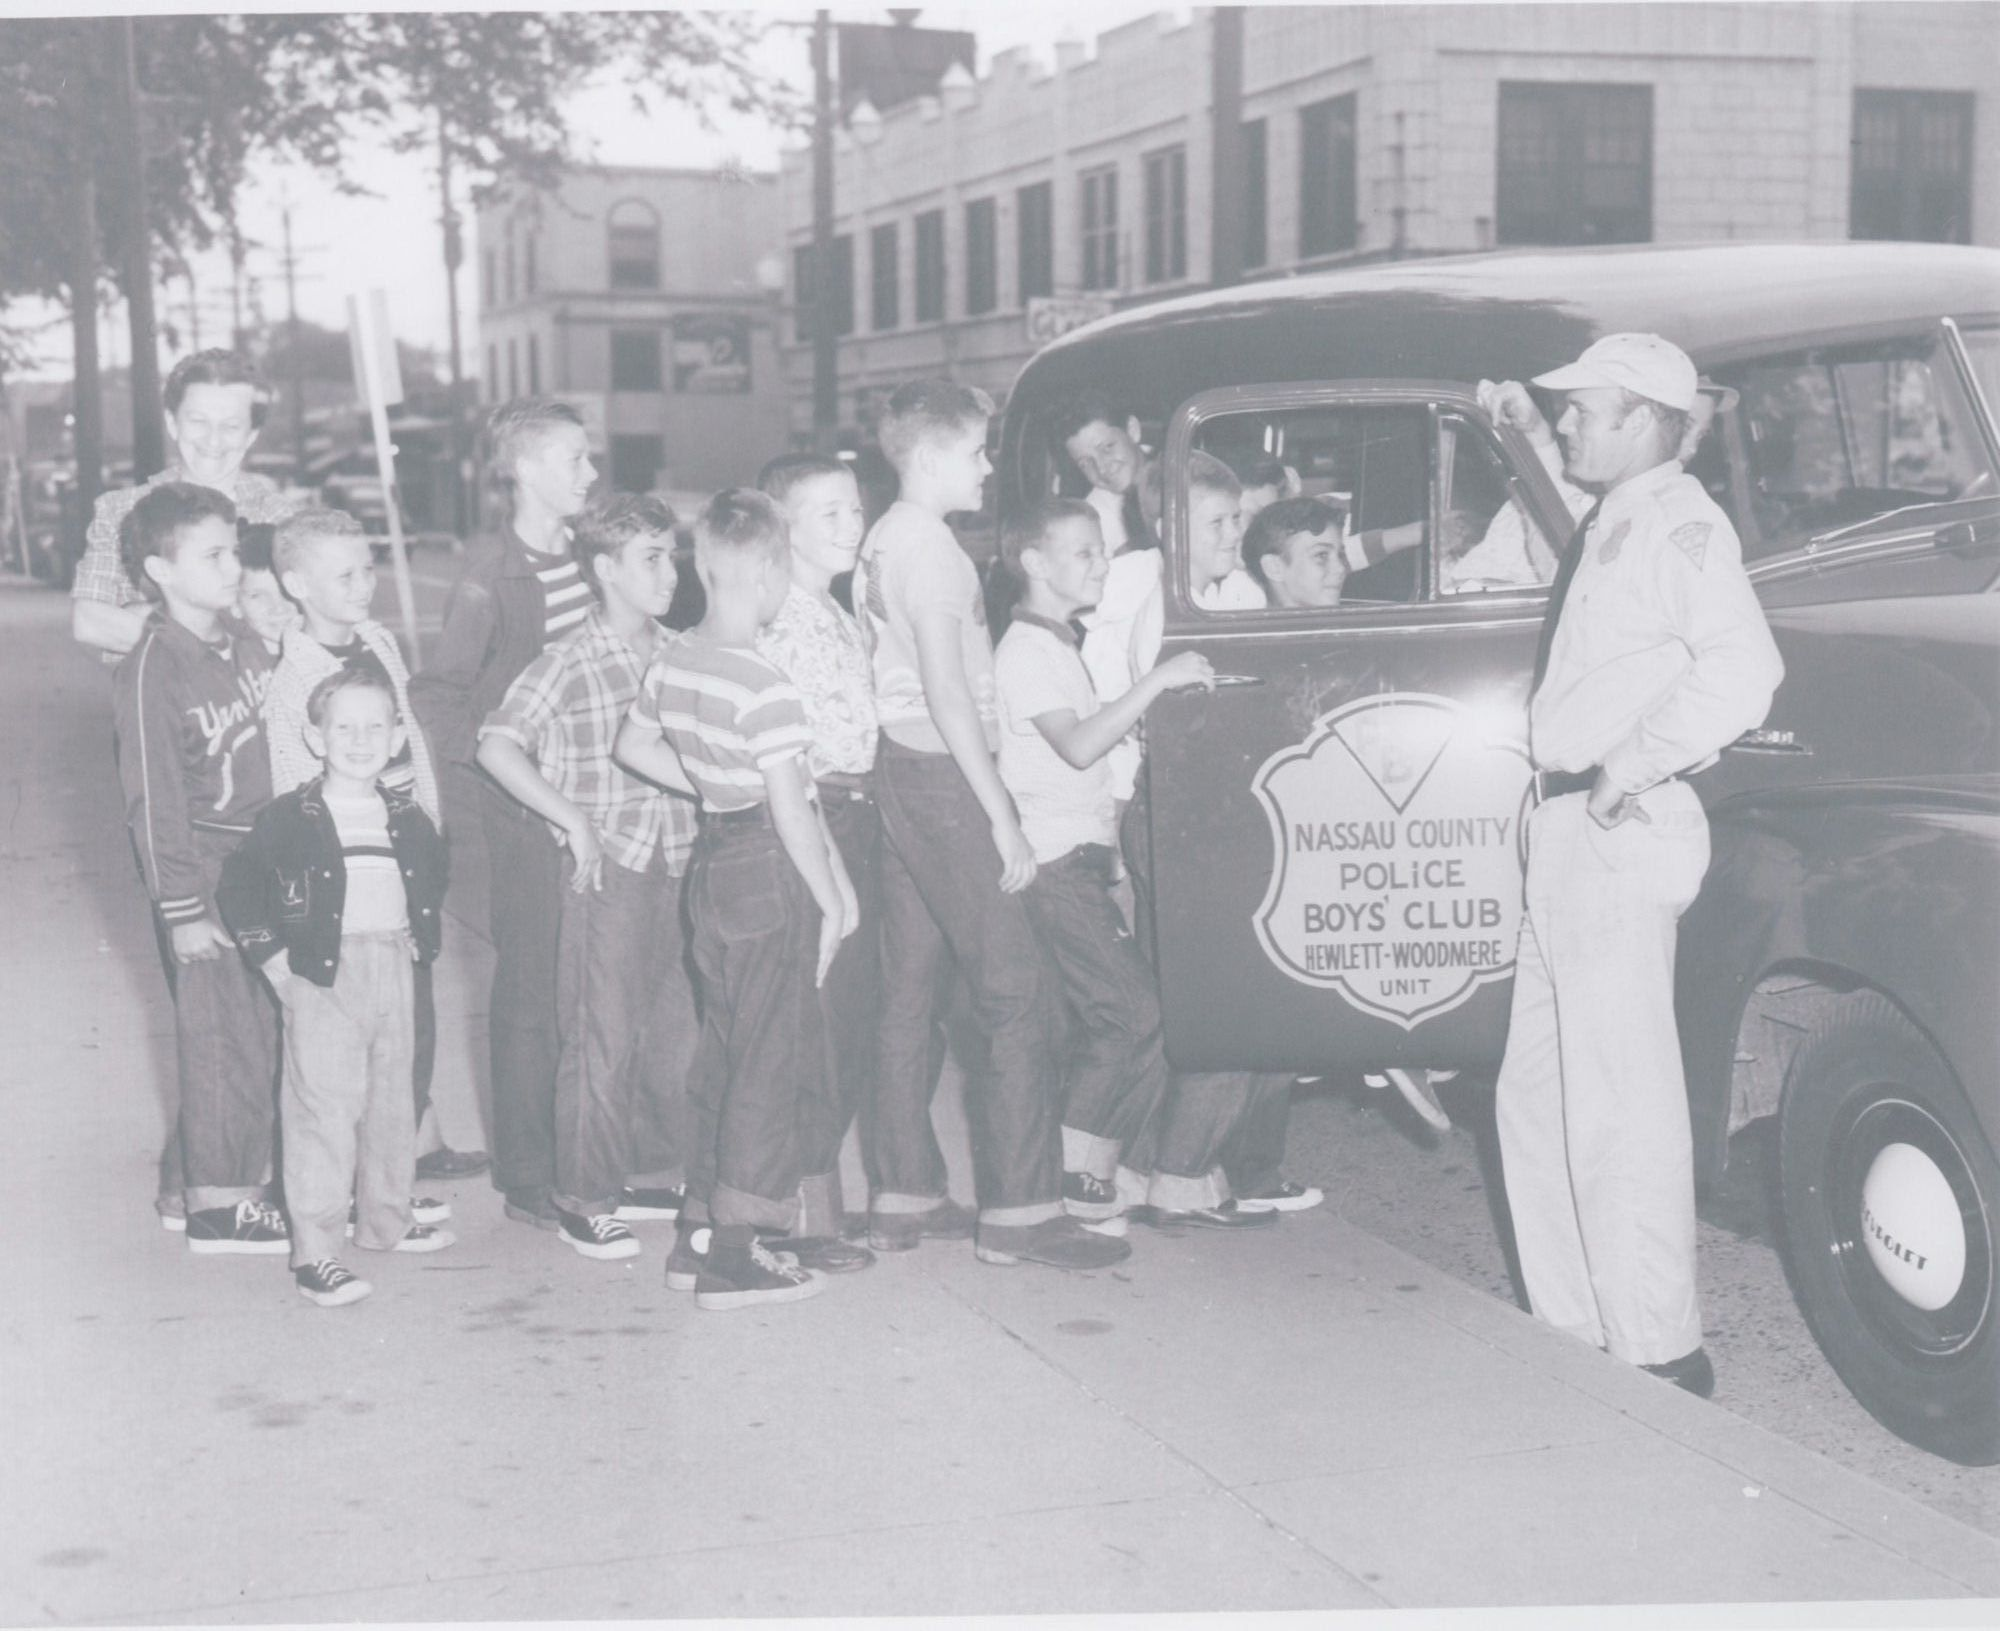 At Broadway and Hartwell Place in Woodmere in the 1950s, children got a look at Harold Sammis' patrol car.